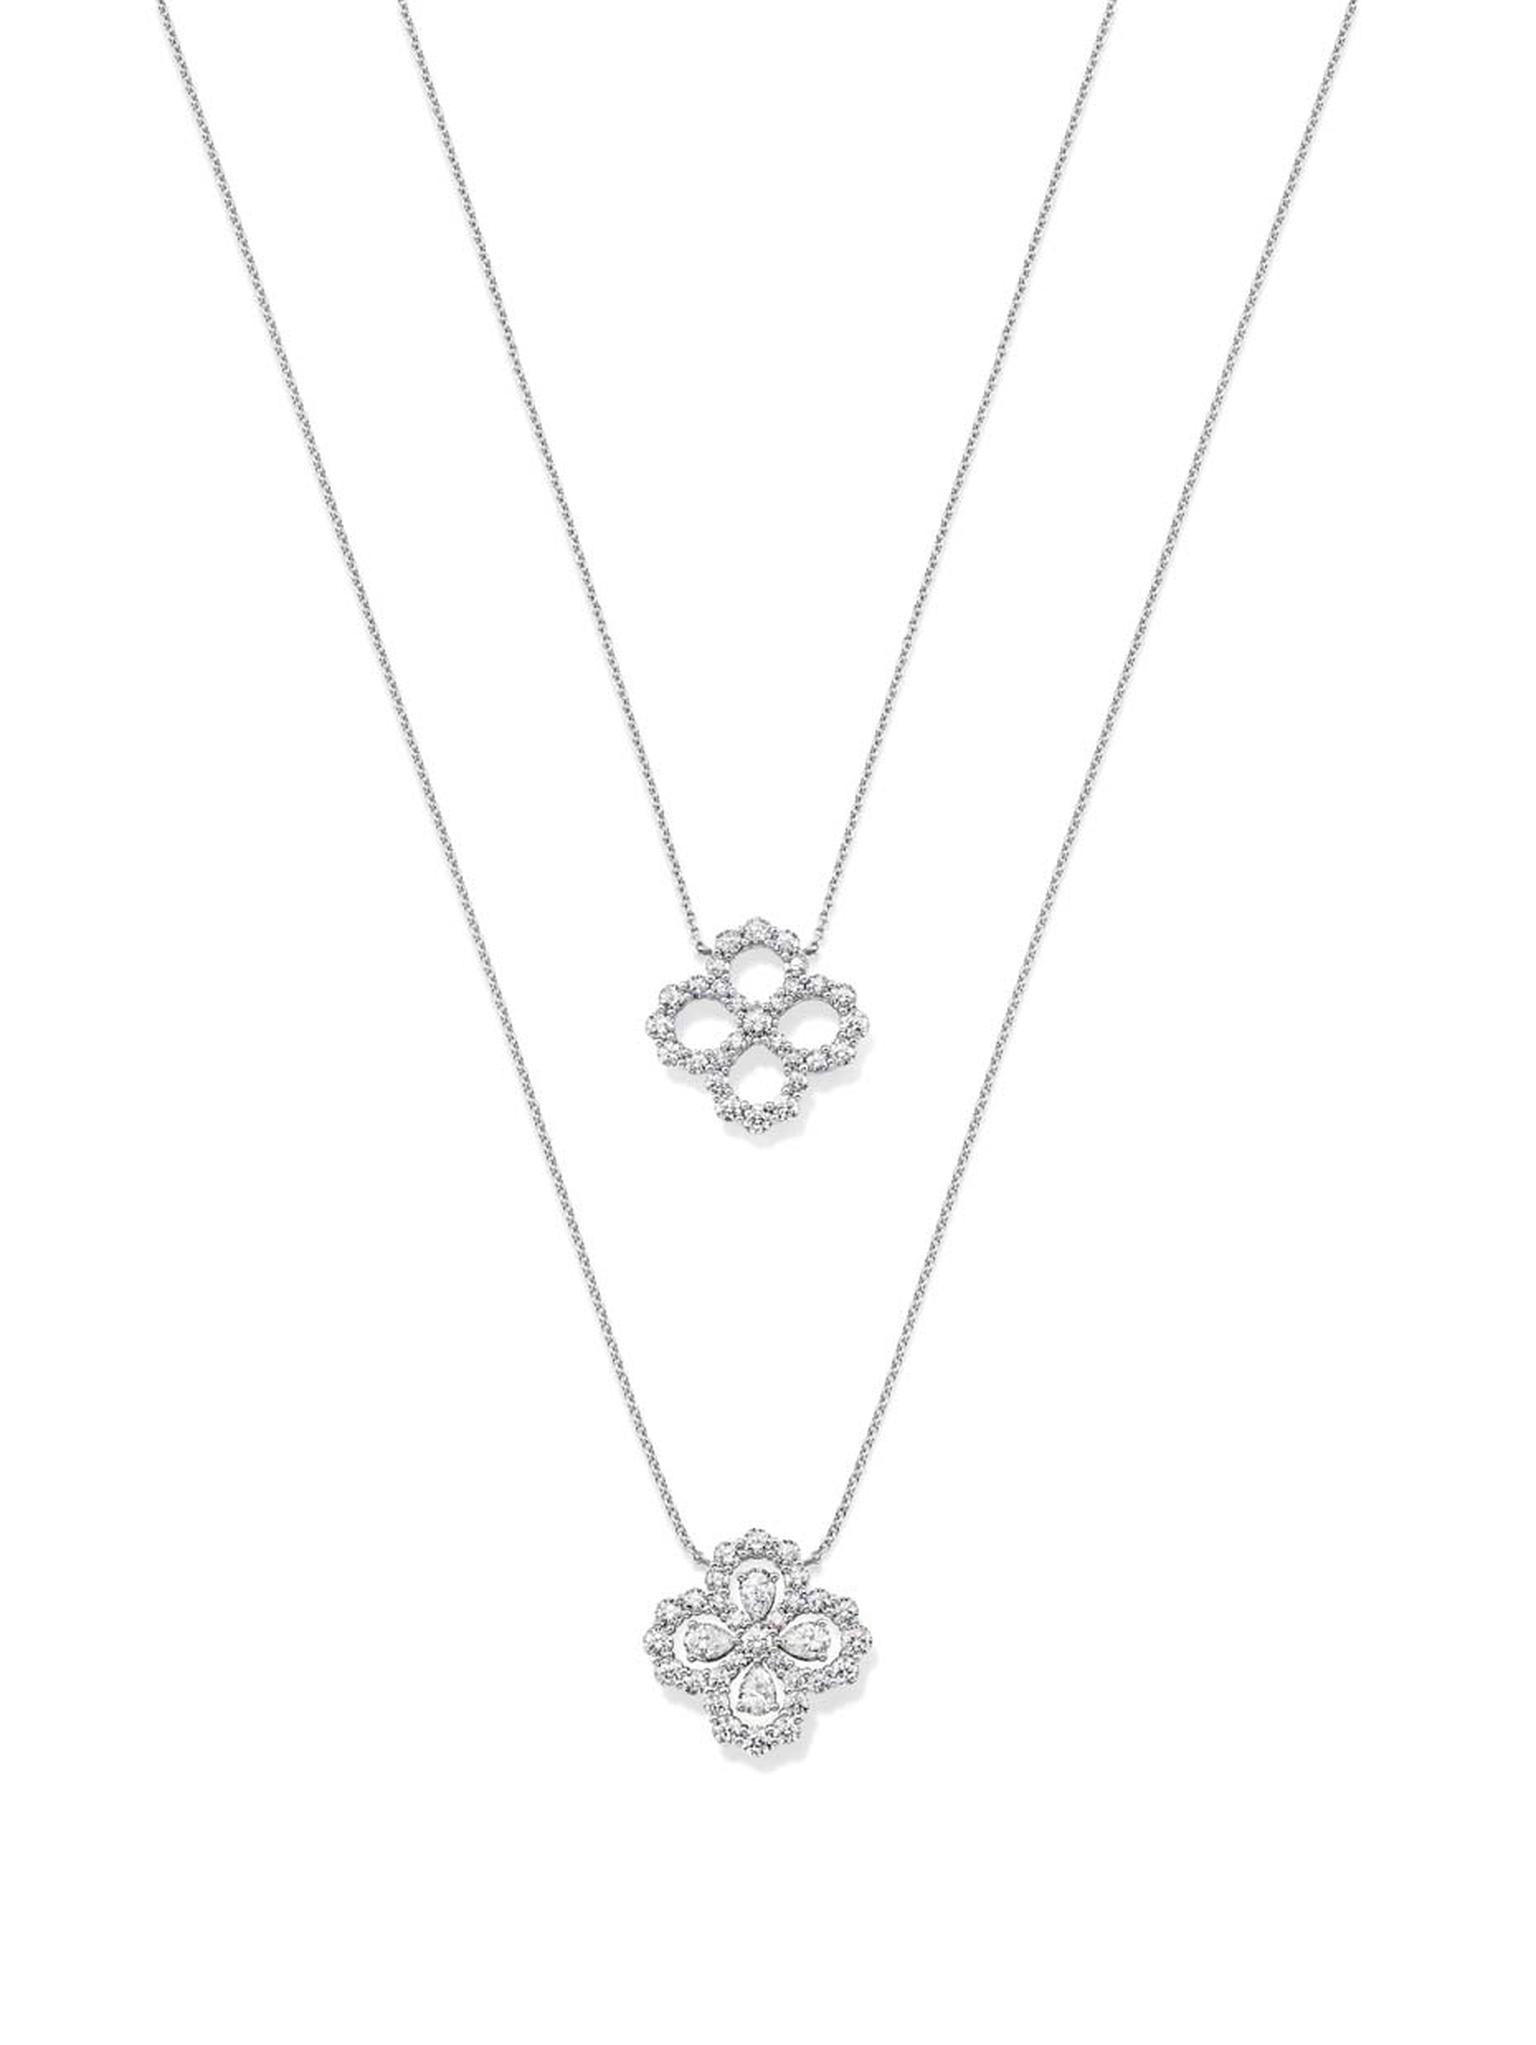 Harry Winston platinum Diamond Loop collection pendants with or without additional diamonds within the teardrop motif.